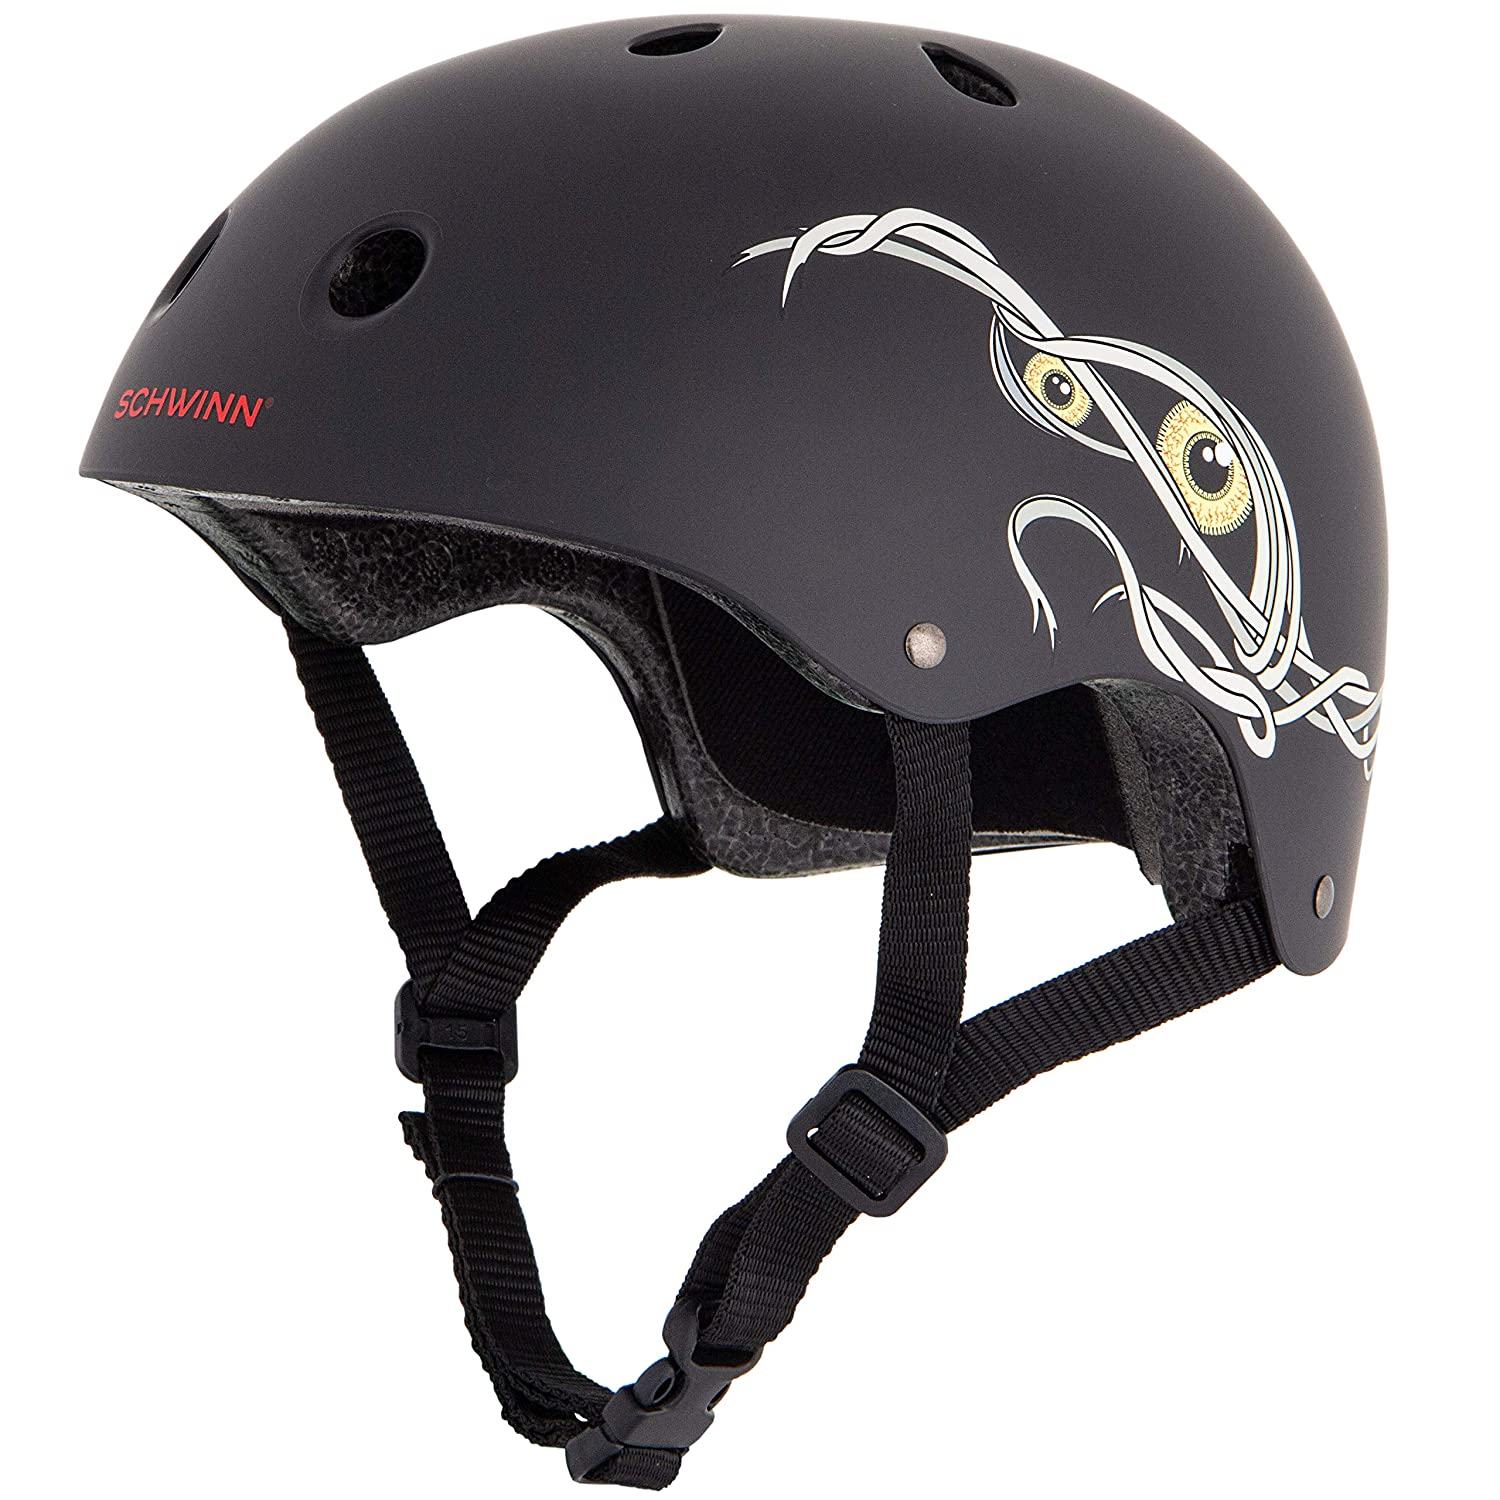 Schwinn Boy The Mummy BMX-Helm, Schwarz, M Pacific Cycle HESW99775011